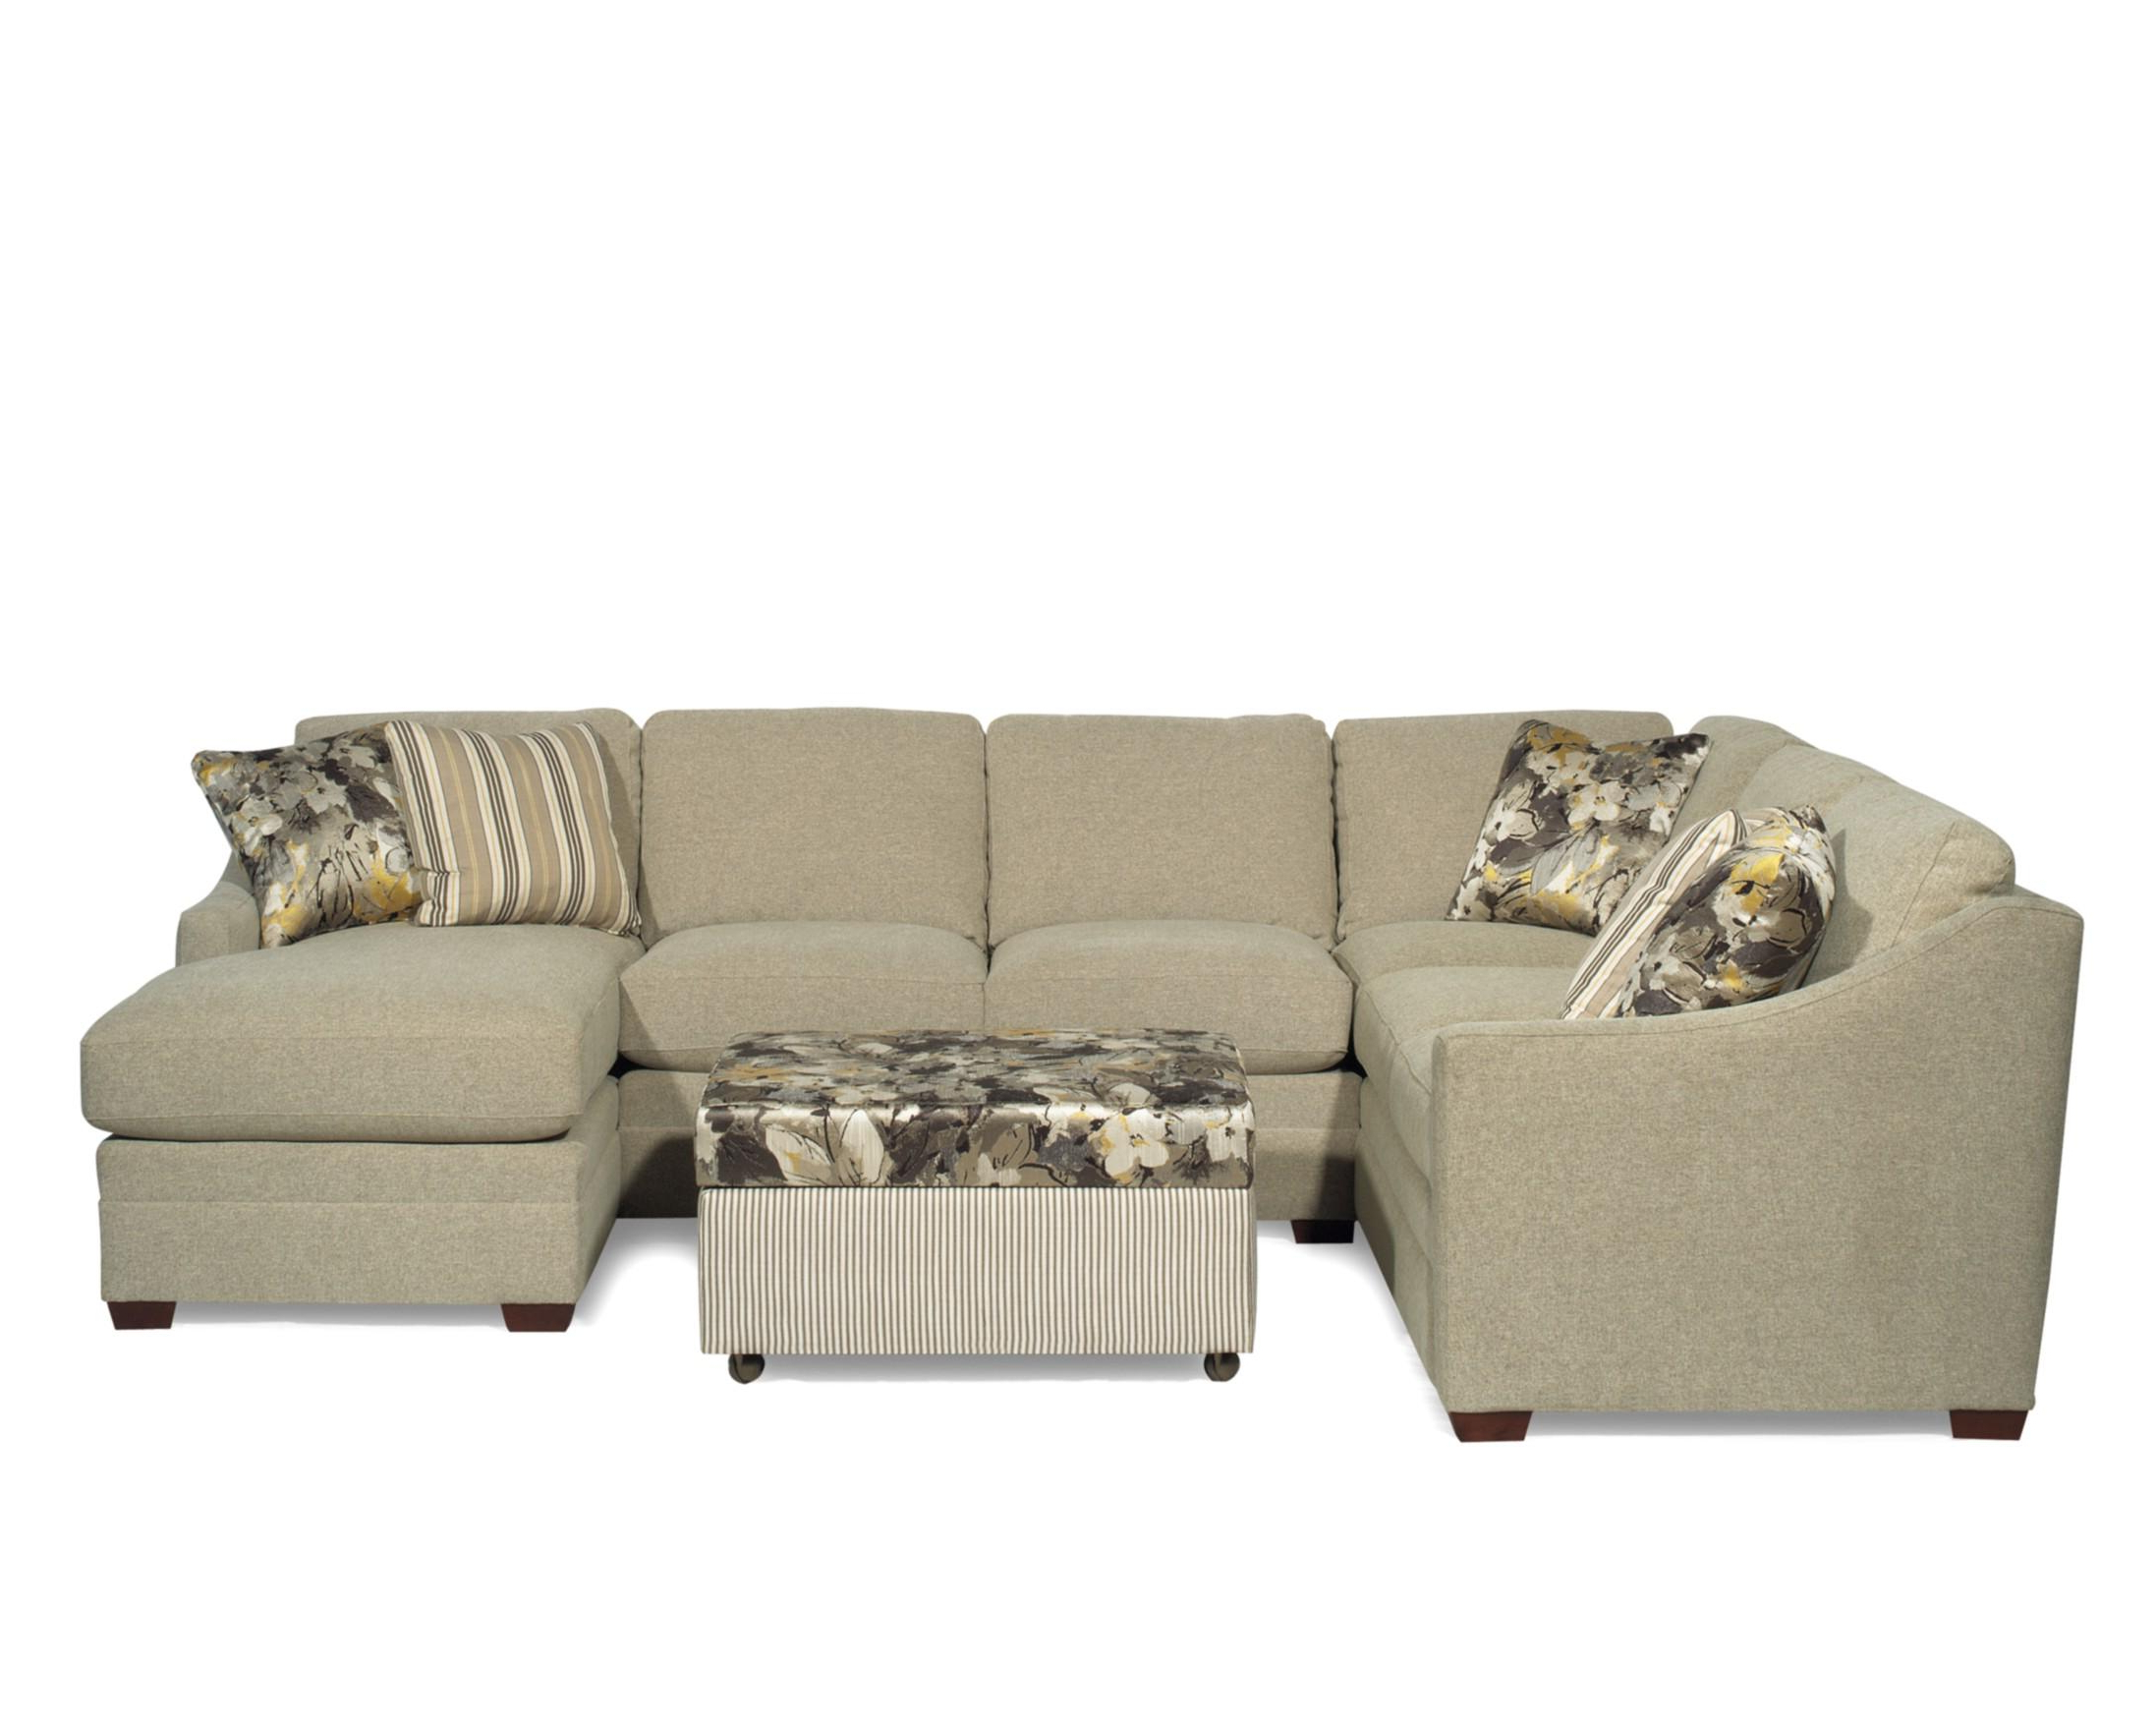 Craftmaster F9 Design Options <B>Customizable</b> 3 Piece Sectional Within 2019 Josephine 2 Piece Sectionals With Laf Sofa (Gallery 12 of 20)